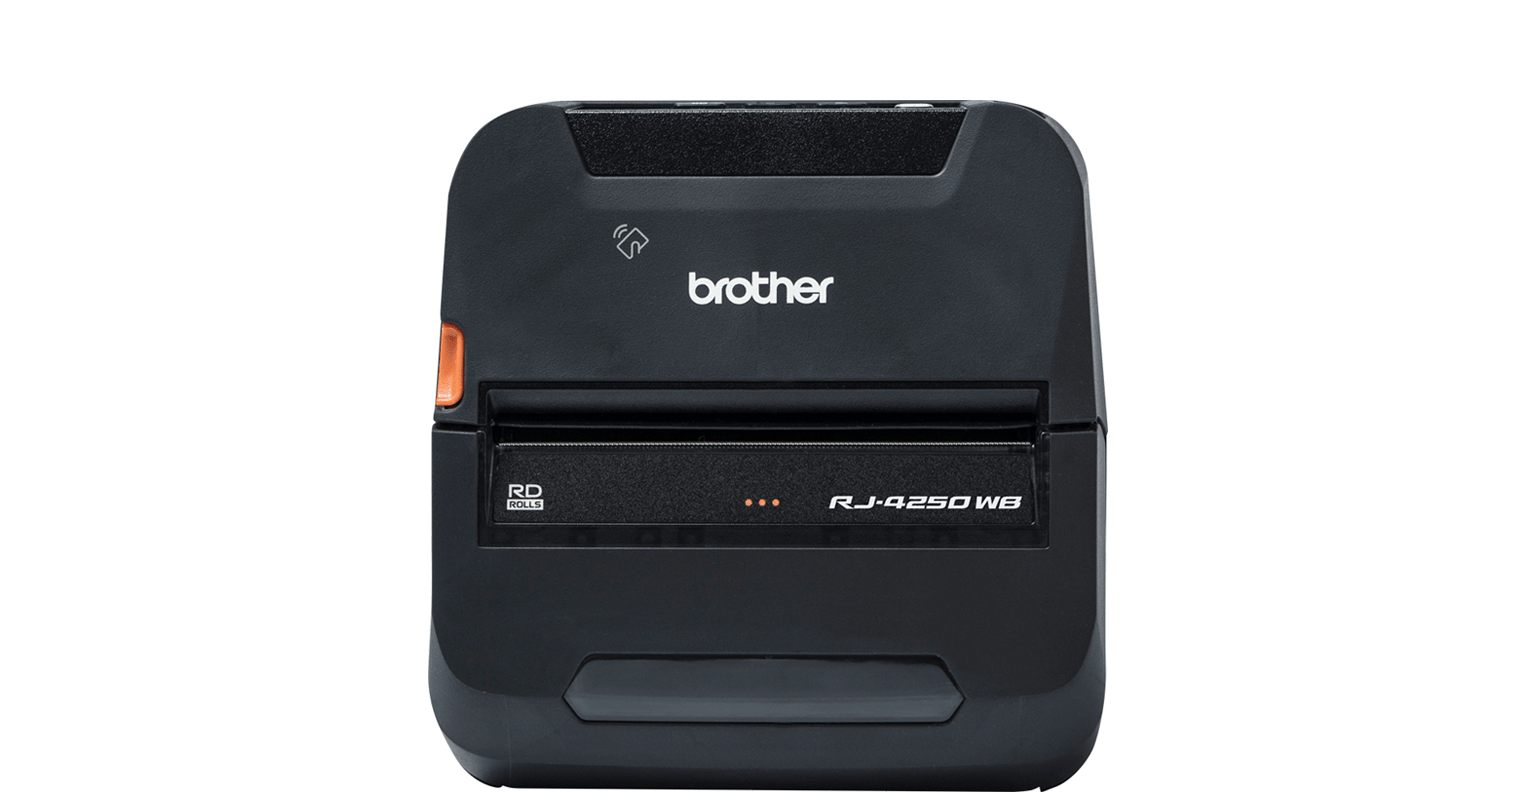 view-offers-mobile-printer-offers